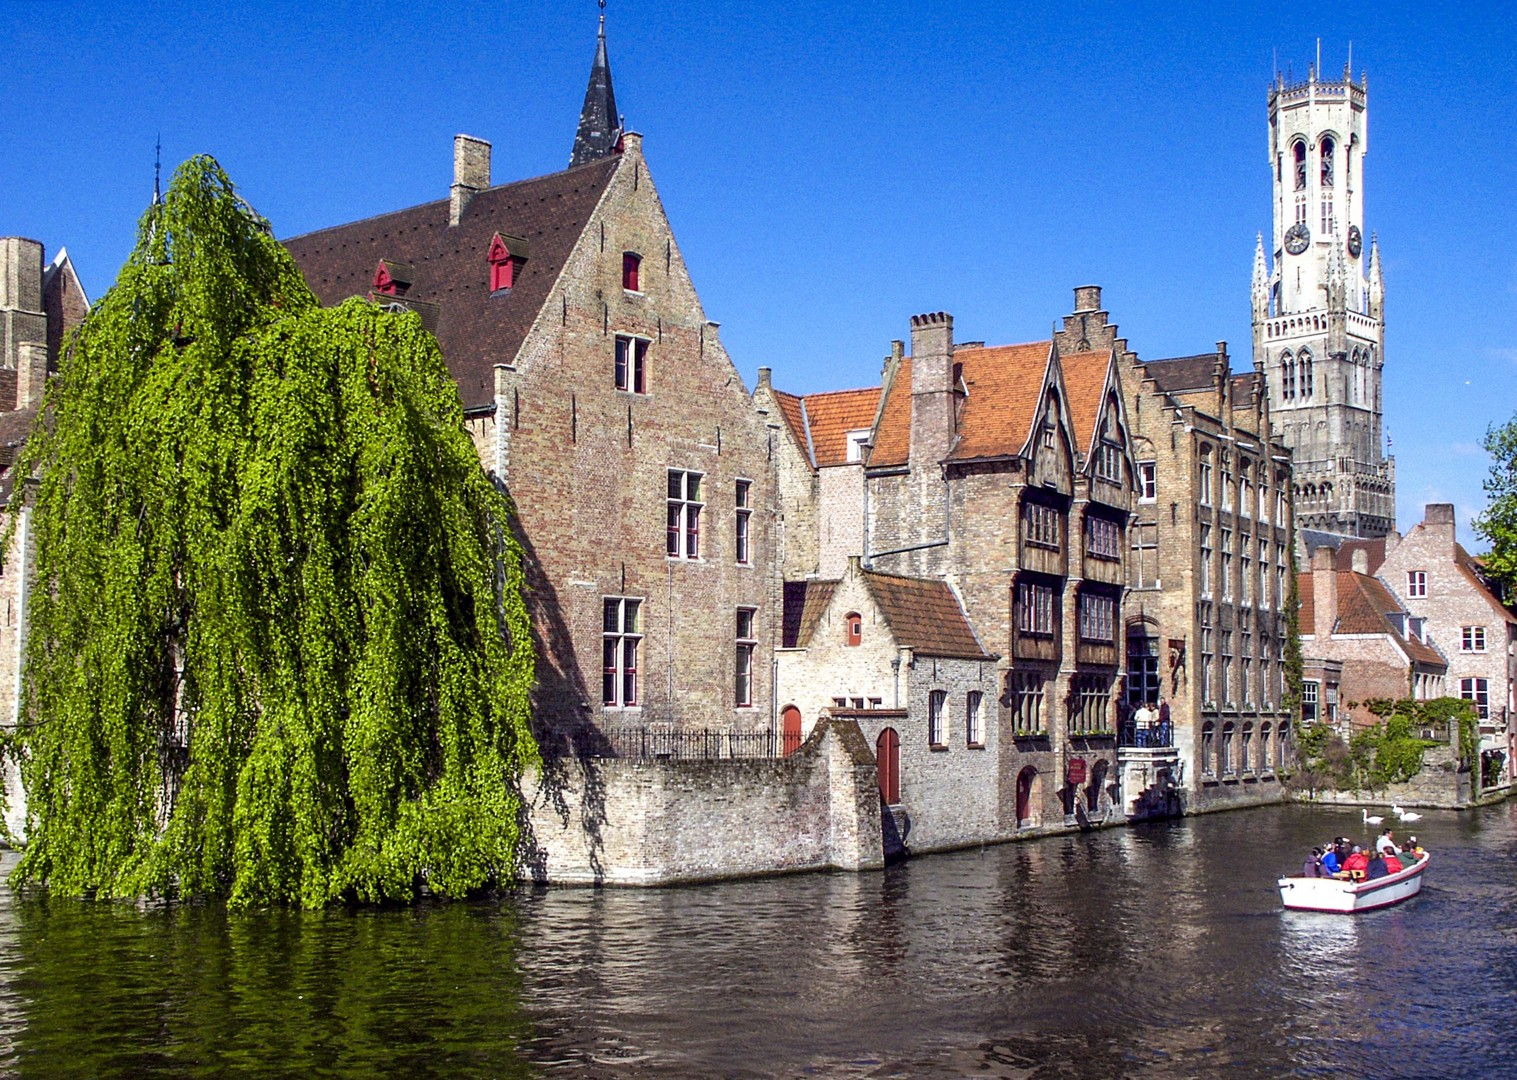 bruges-canals-bike-and-boat-amsterdam-skedaddle-comfortable-accommodation.jpg - Holland and Belgium - Amsterdam to Bruges - Leisure Cycling